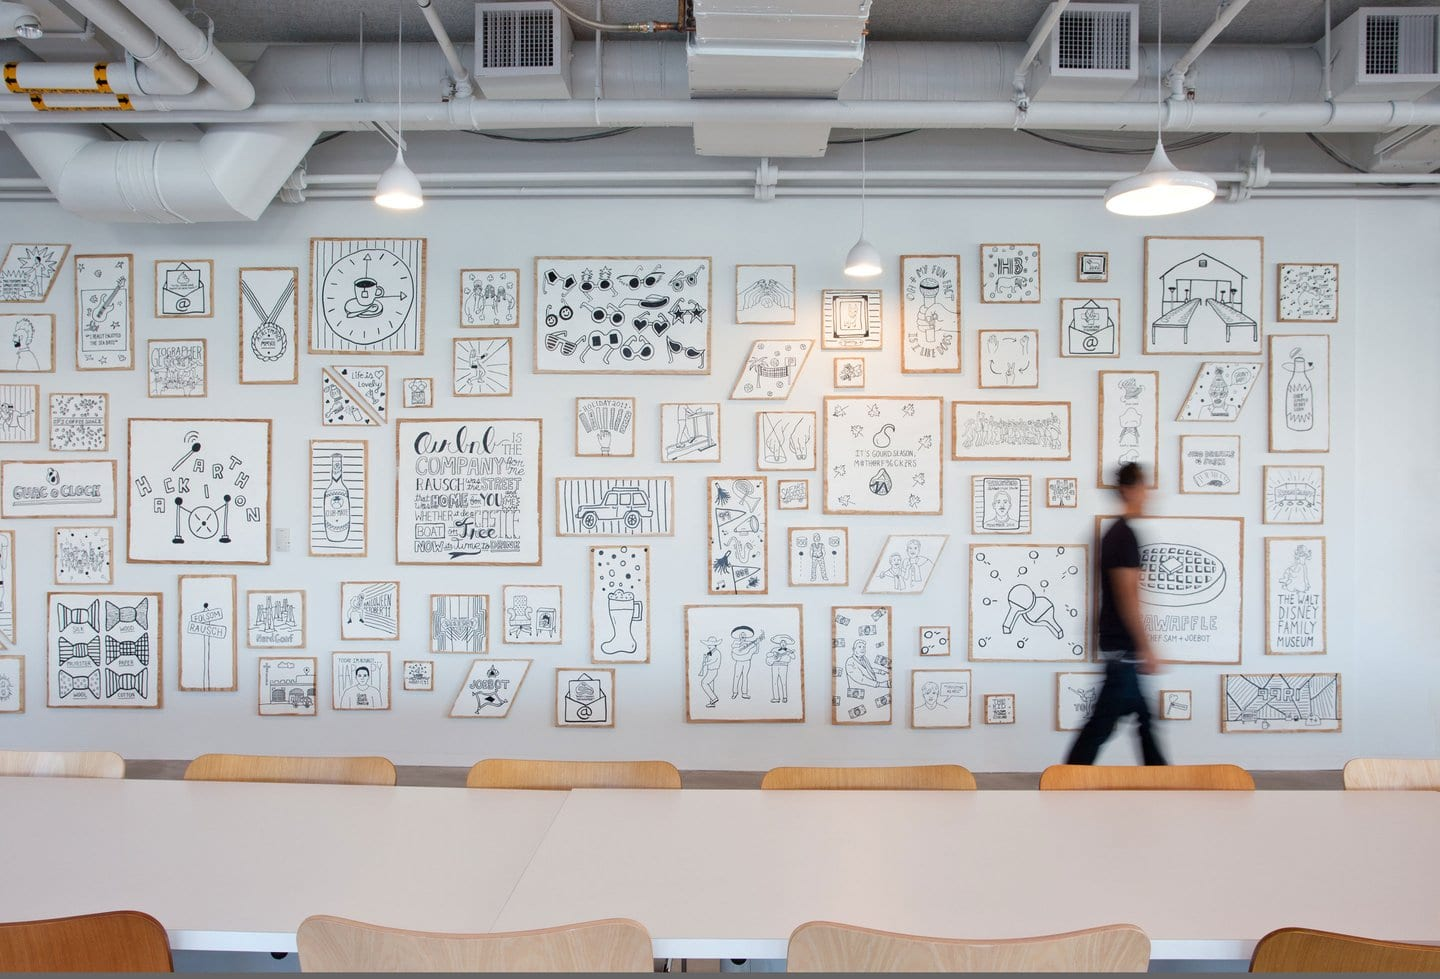 Airbnb leads inspirational office arms race with Strangelove